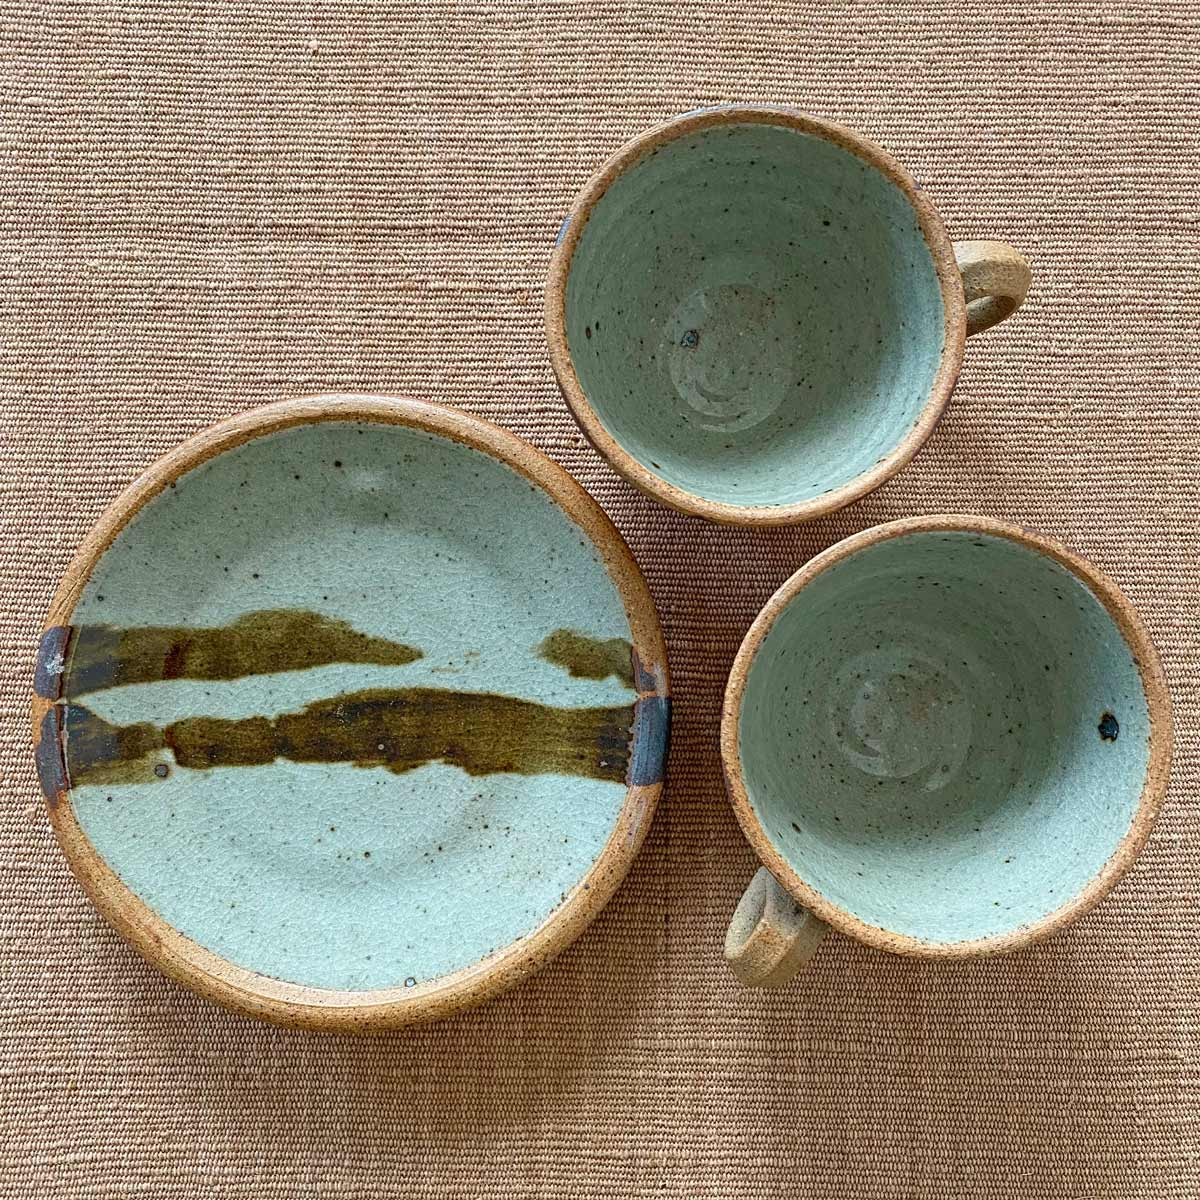 Jack Welbourne Pottery Cups Plates Tinsmiths